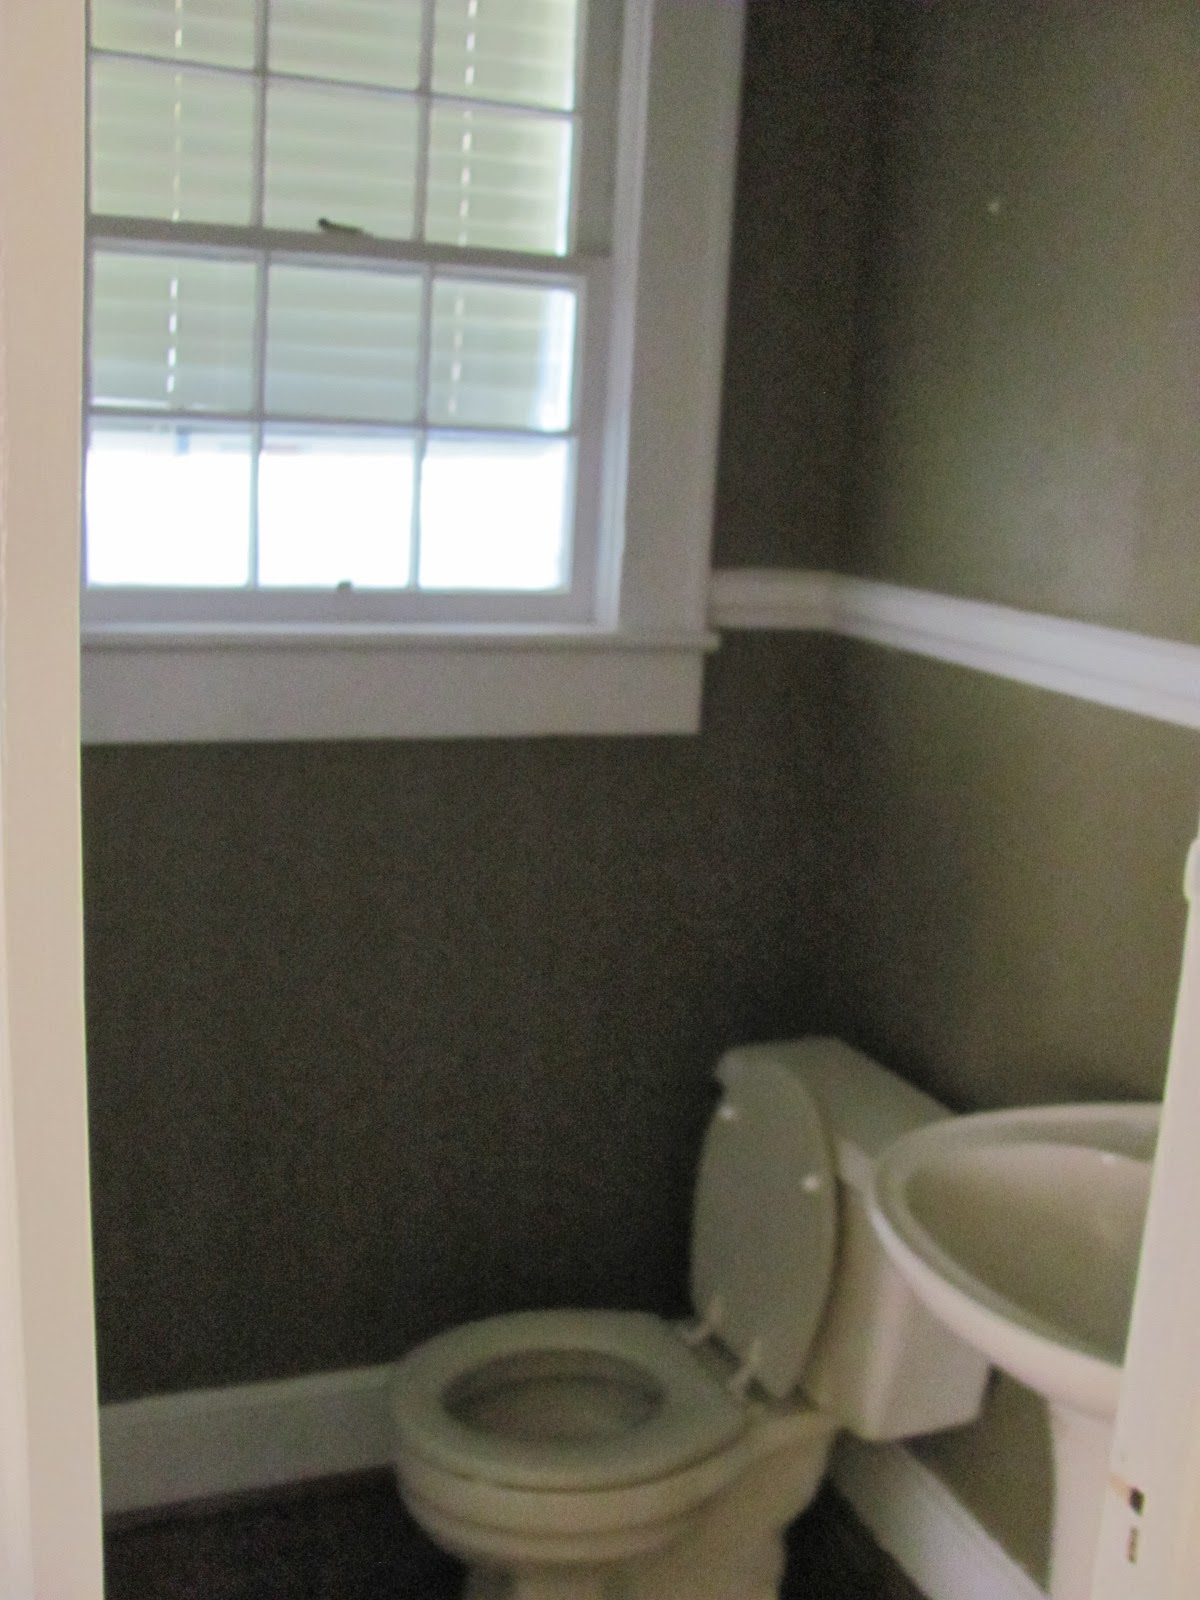 Powder Room before redesign and organization